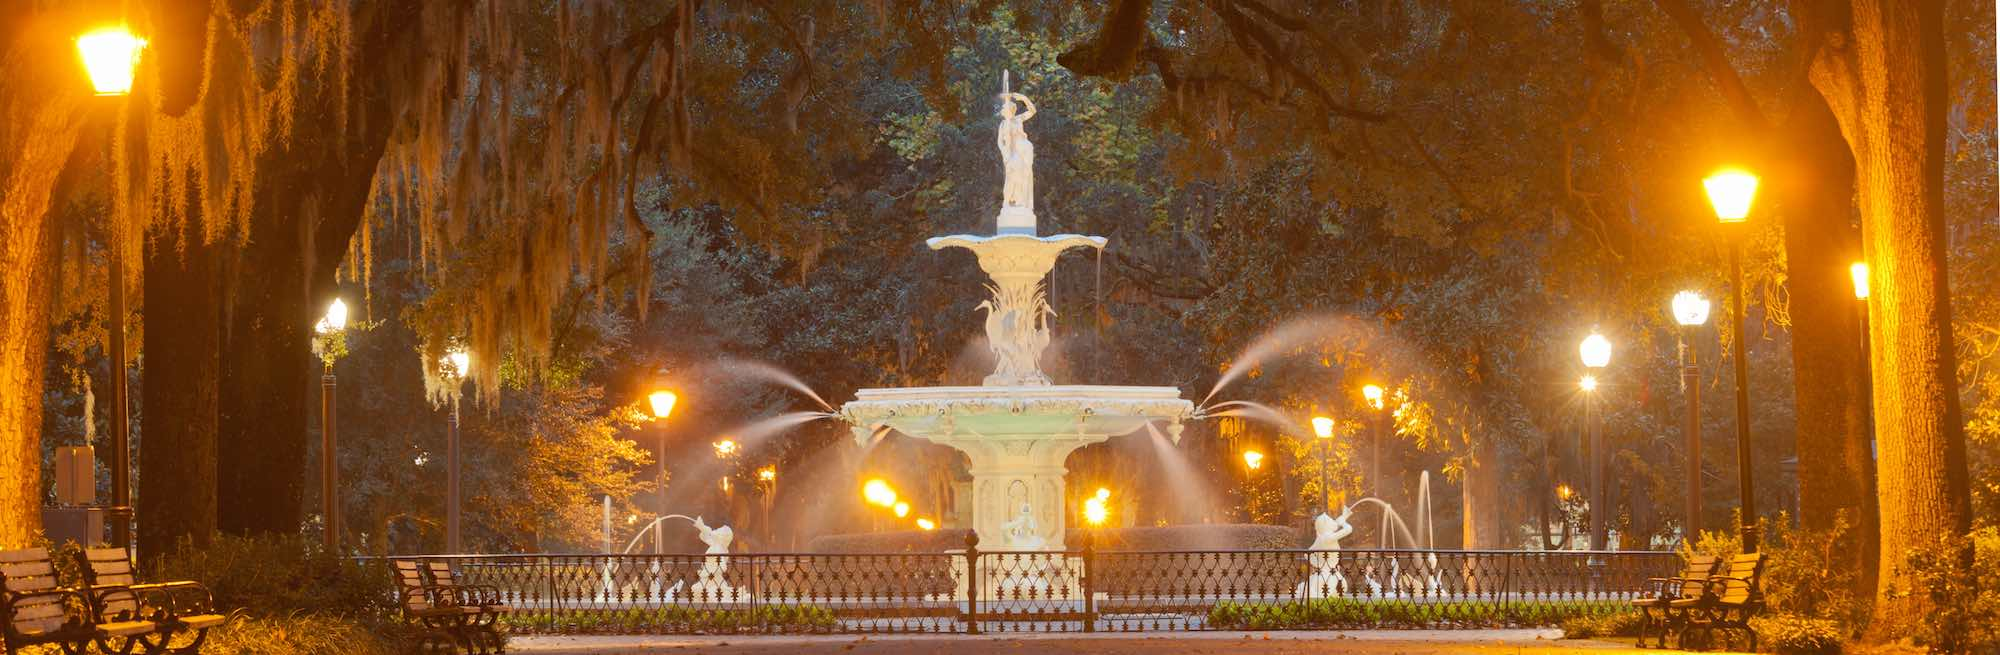 The fountain in Forsyth Park, Savannah, at night.